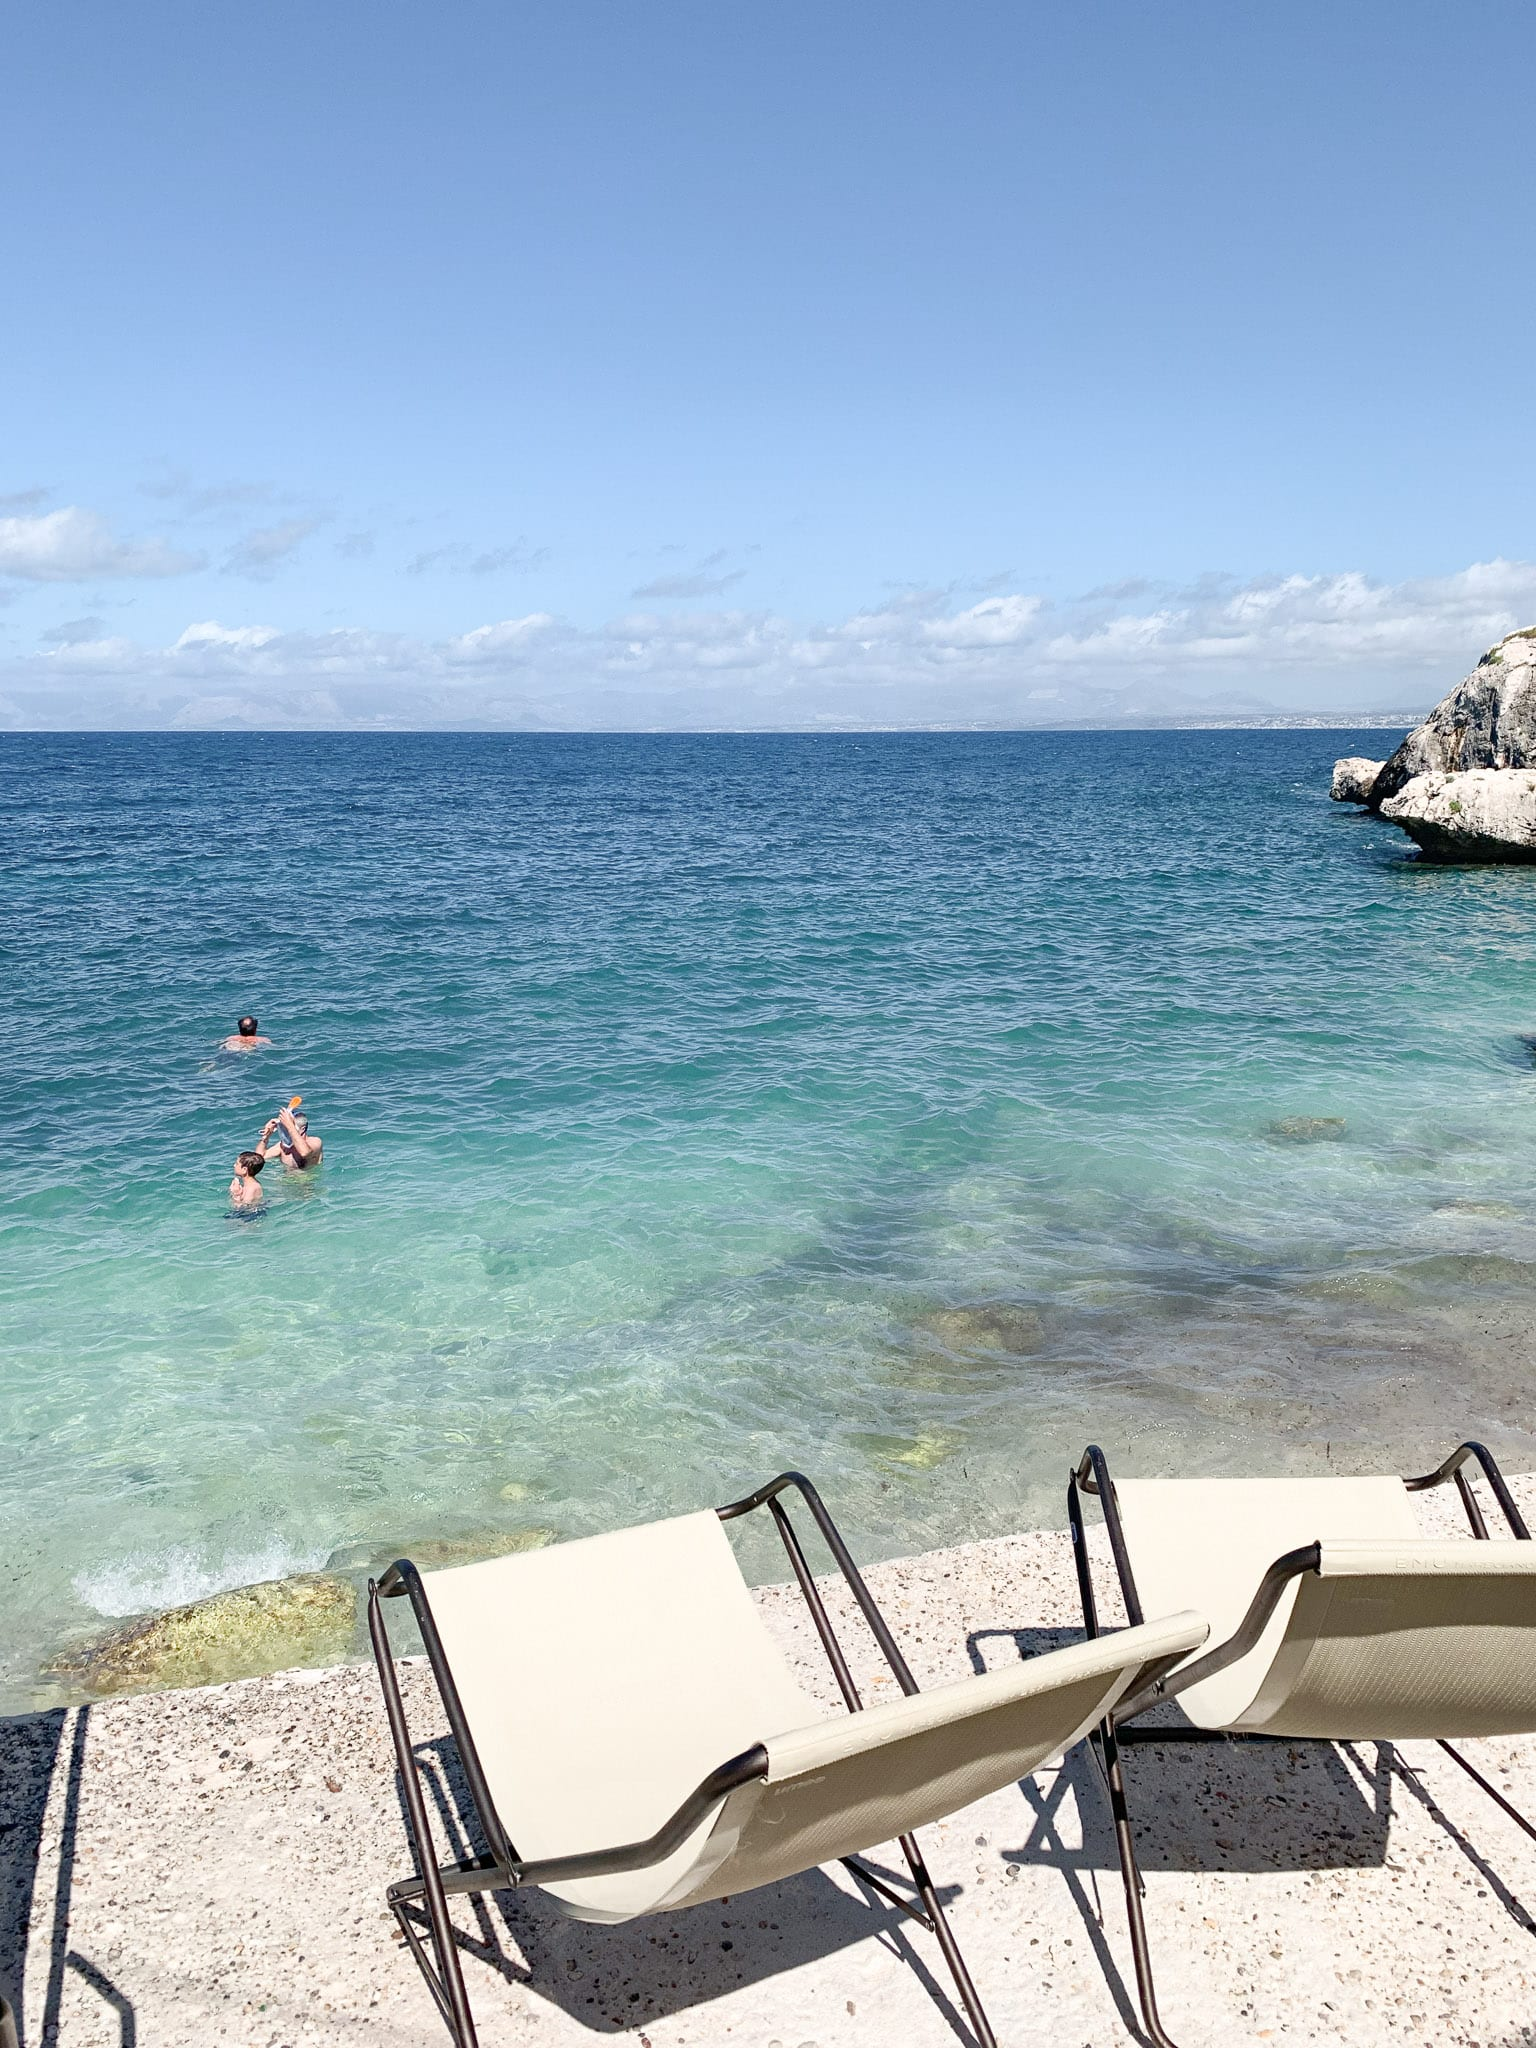 with the entry fee we have two beach chairs for the whole day staying in front of the sea inside the private property of la tonnara di scopello